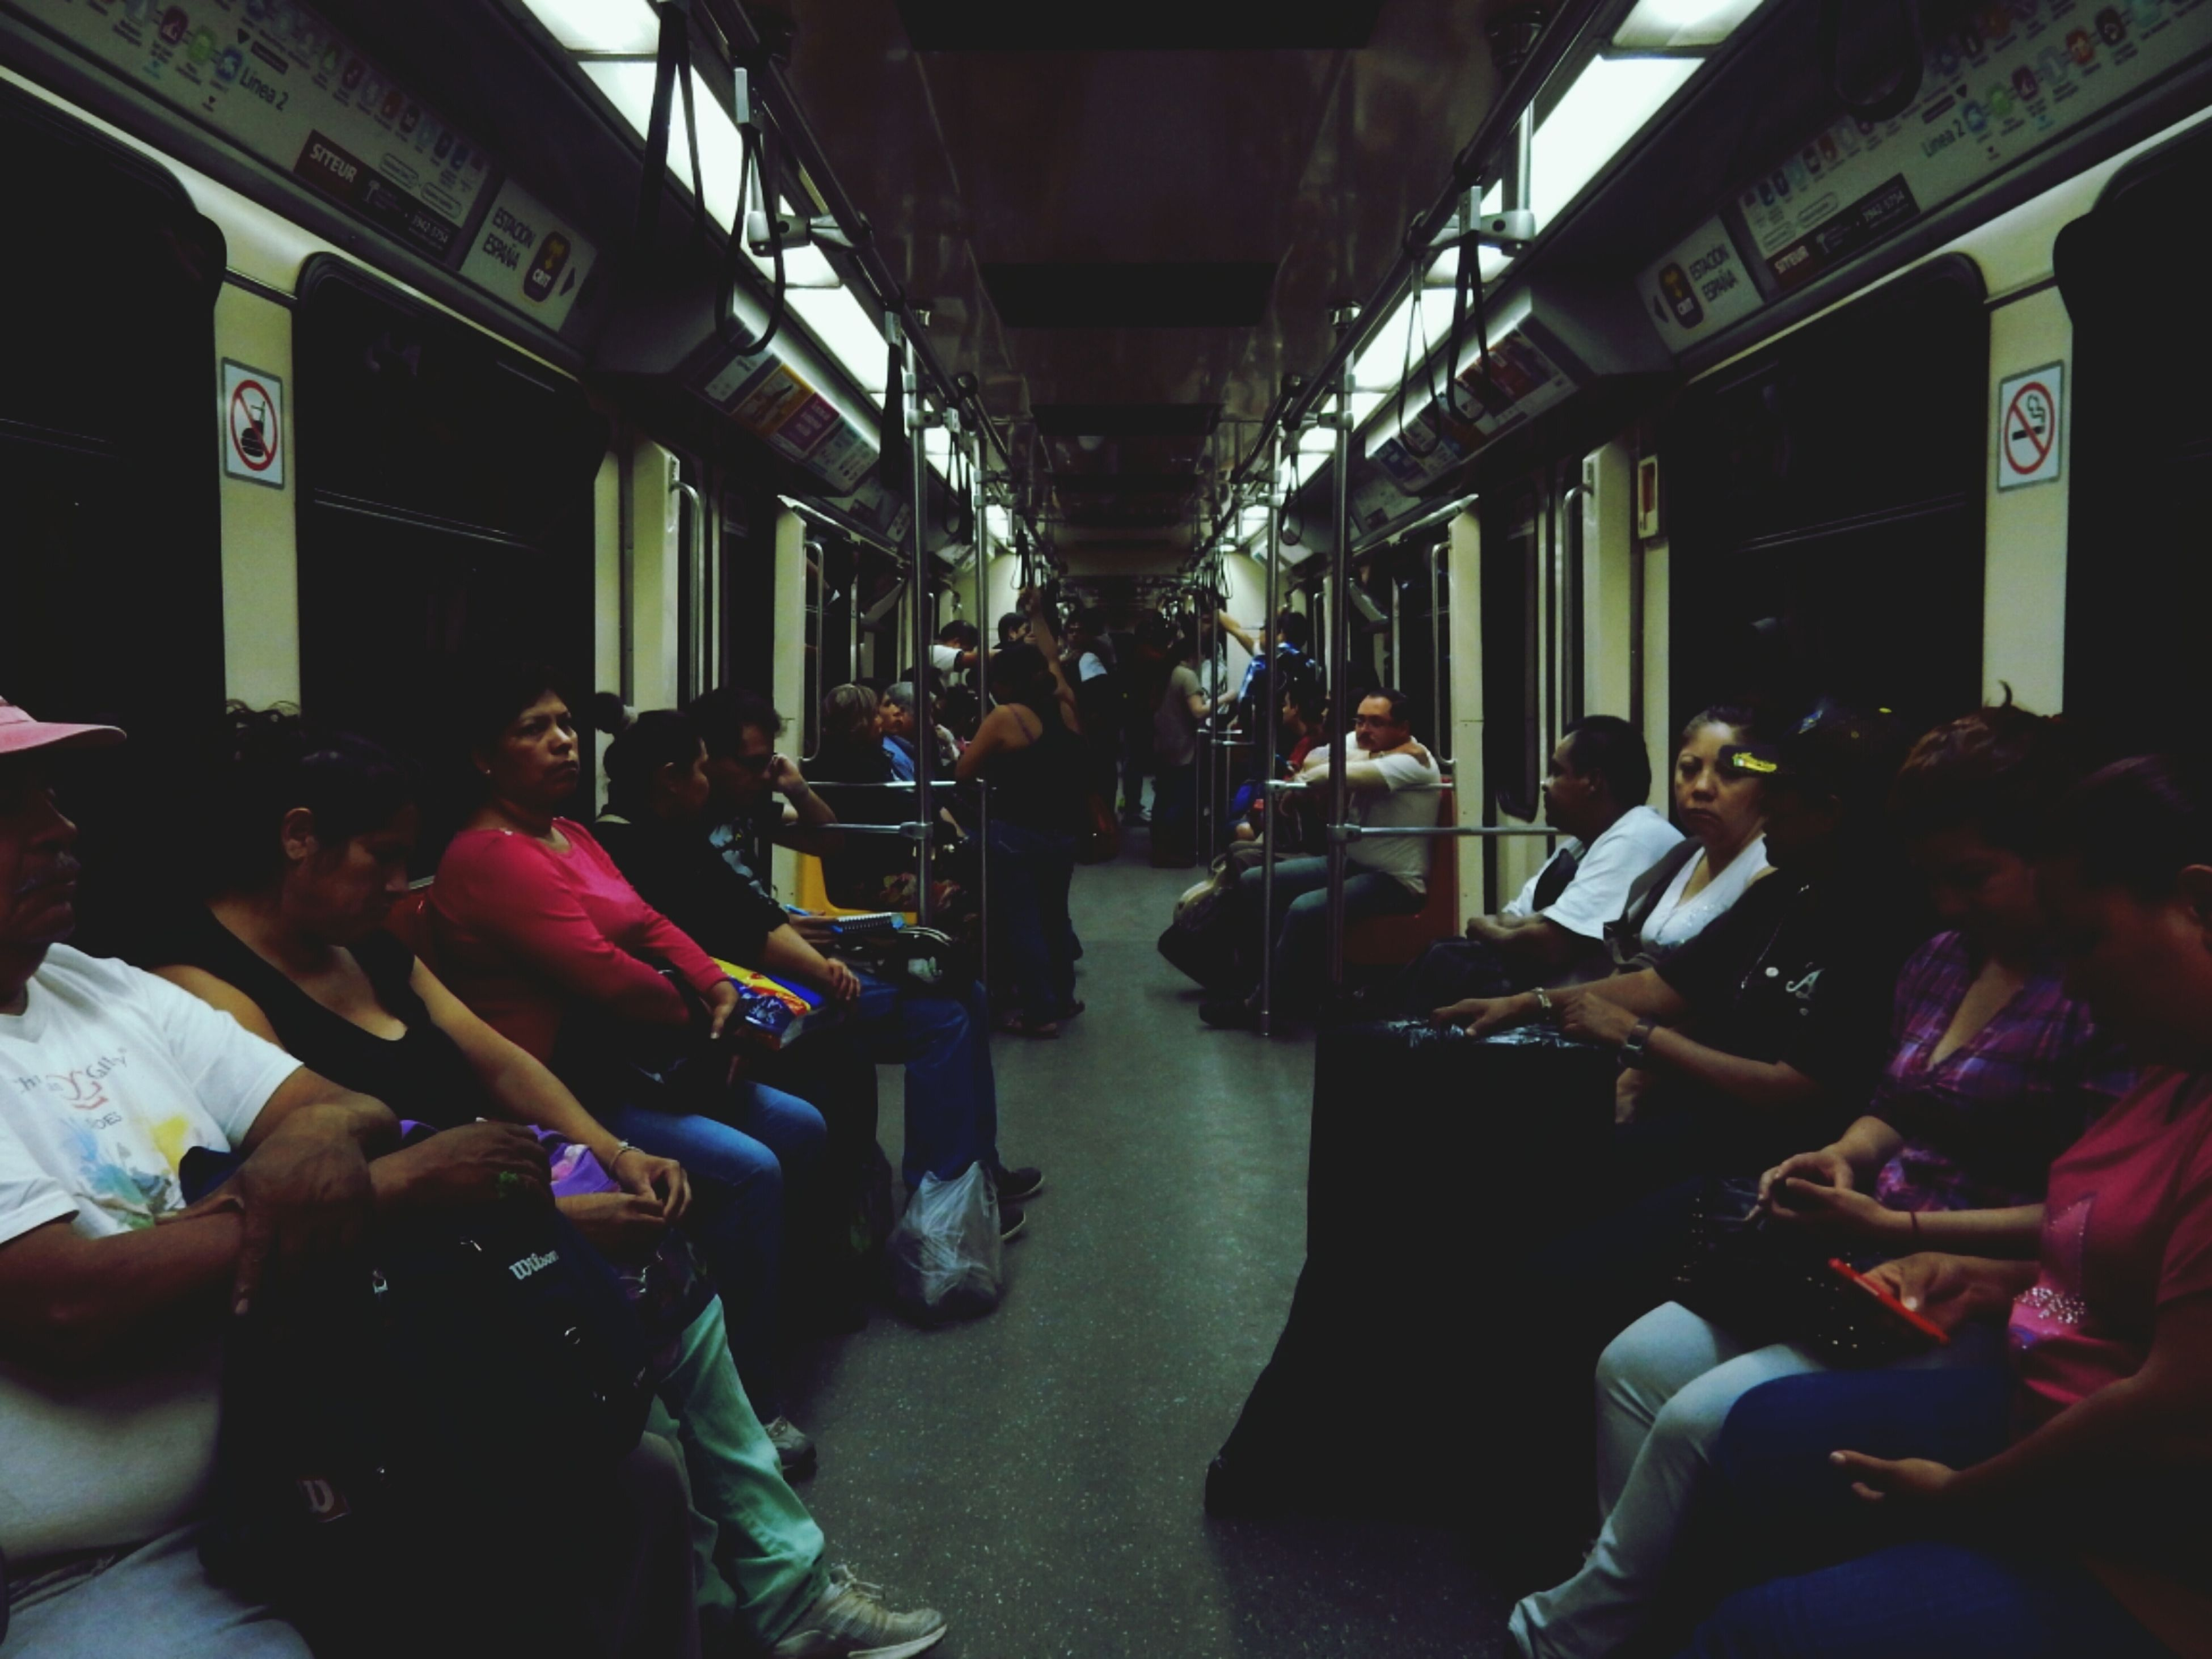 men, large group of people, person, lifestyles, indoors, sitting, leisure activity, medium group of people, transportation, city life, illuminated, chair, group of people, travel, mode of transport, restaurant, incidental people, bus, city